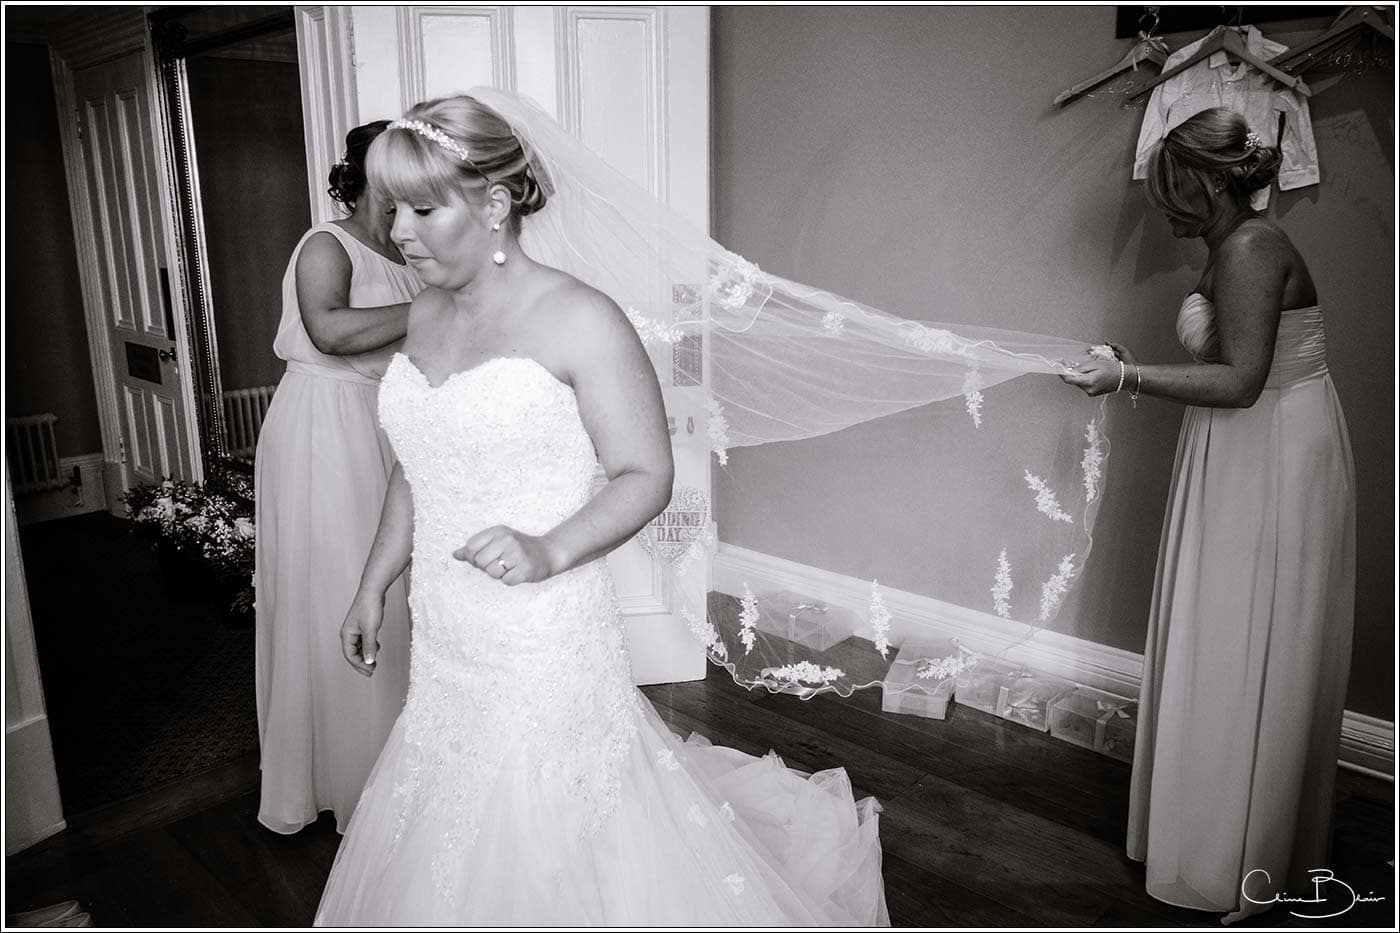 Brides veil being adjusted at Pendrell Hall as photographed by a recommended Pendrell Hall photographer